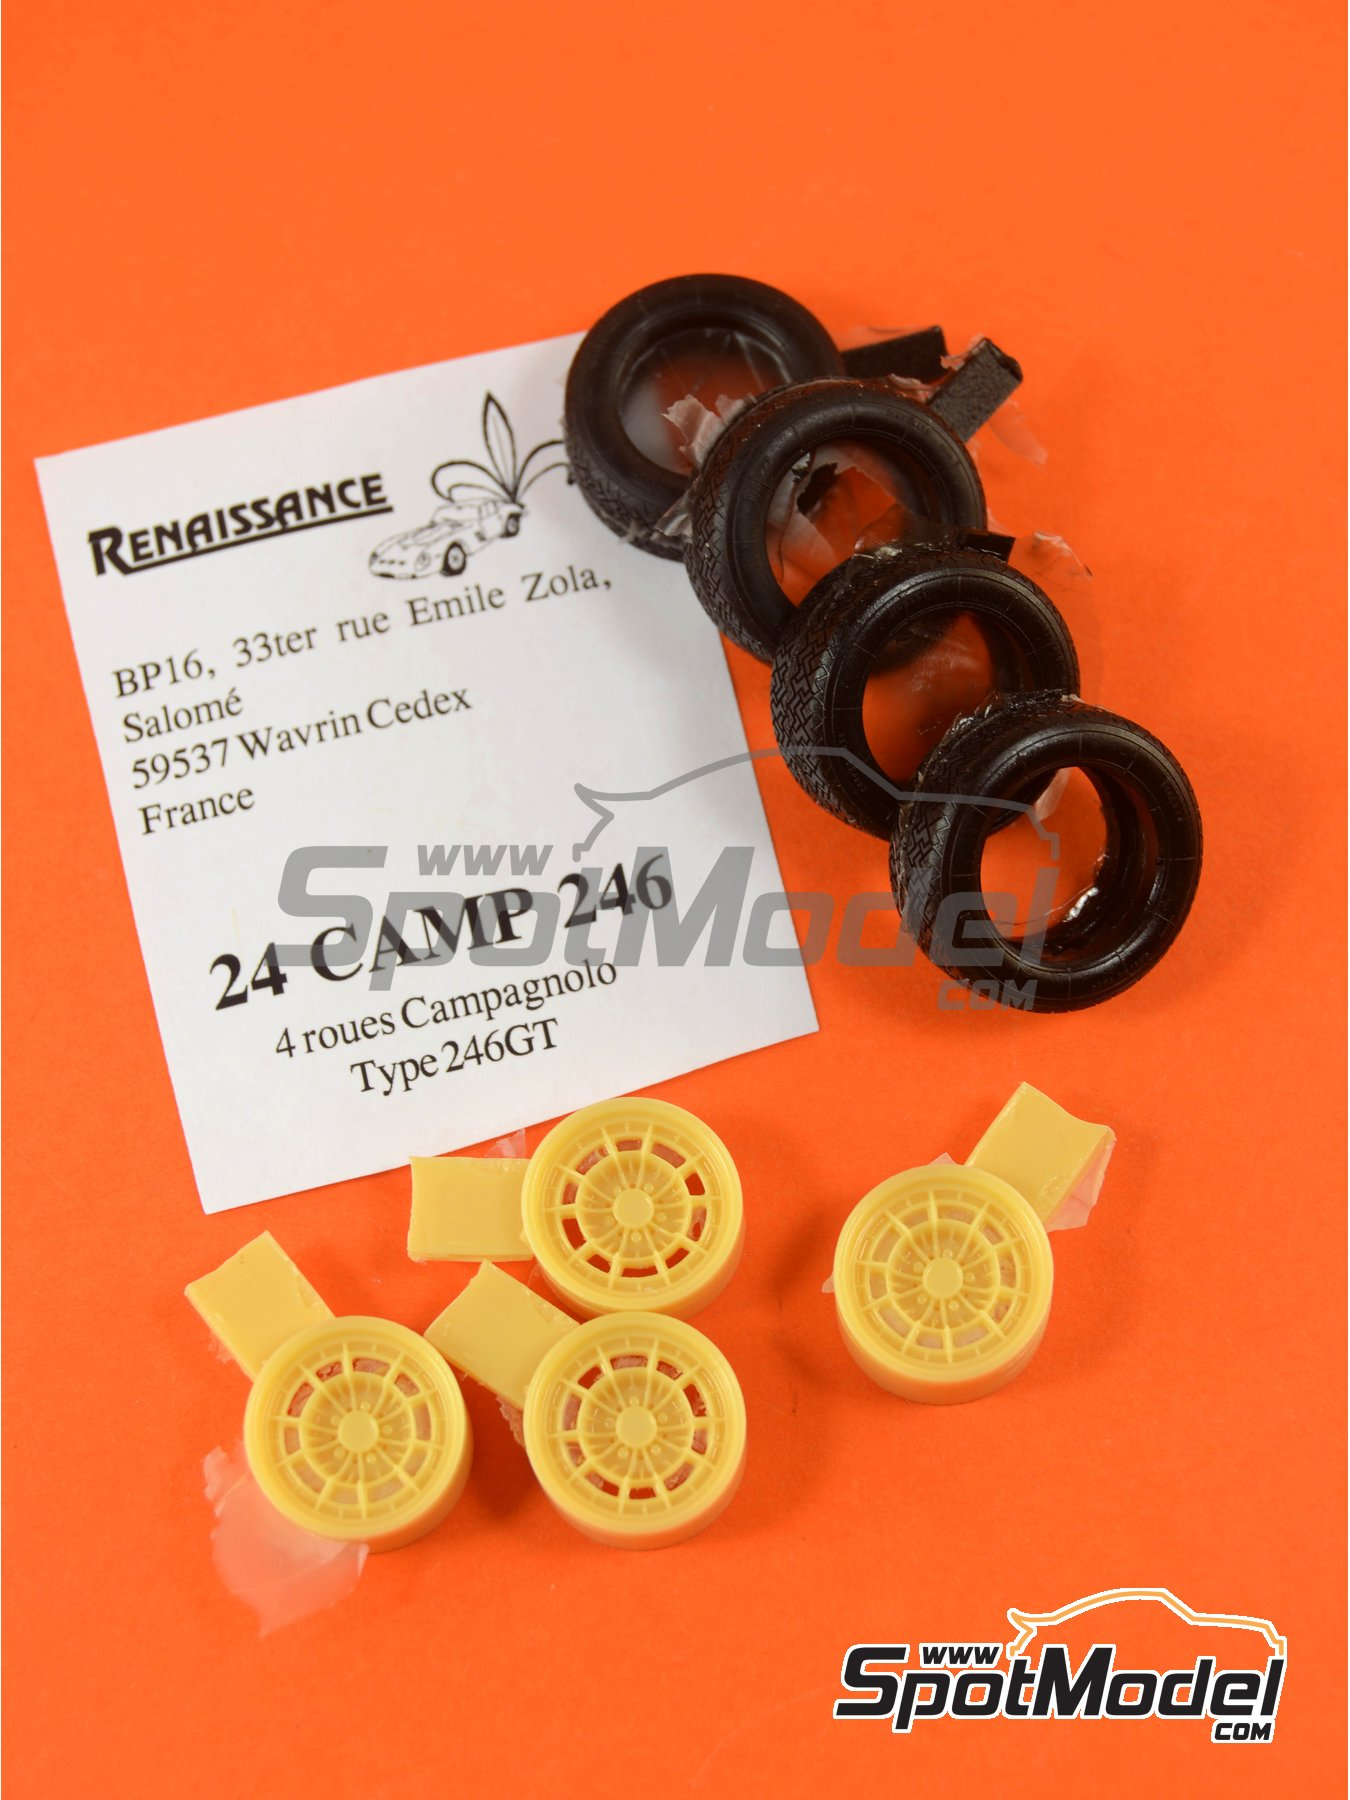 Campagnolo rims for Ferrari Dino 246 GT   Rims and tyres set in 1/24 scale manufactured by Renaissance Models (ref.24CAMP246) image